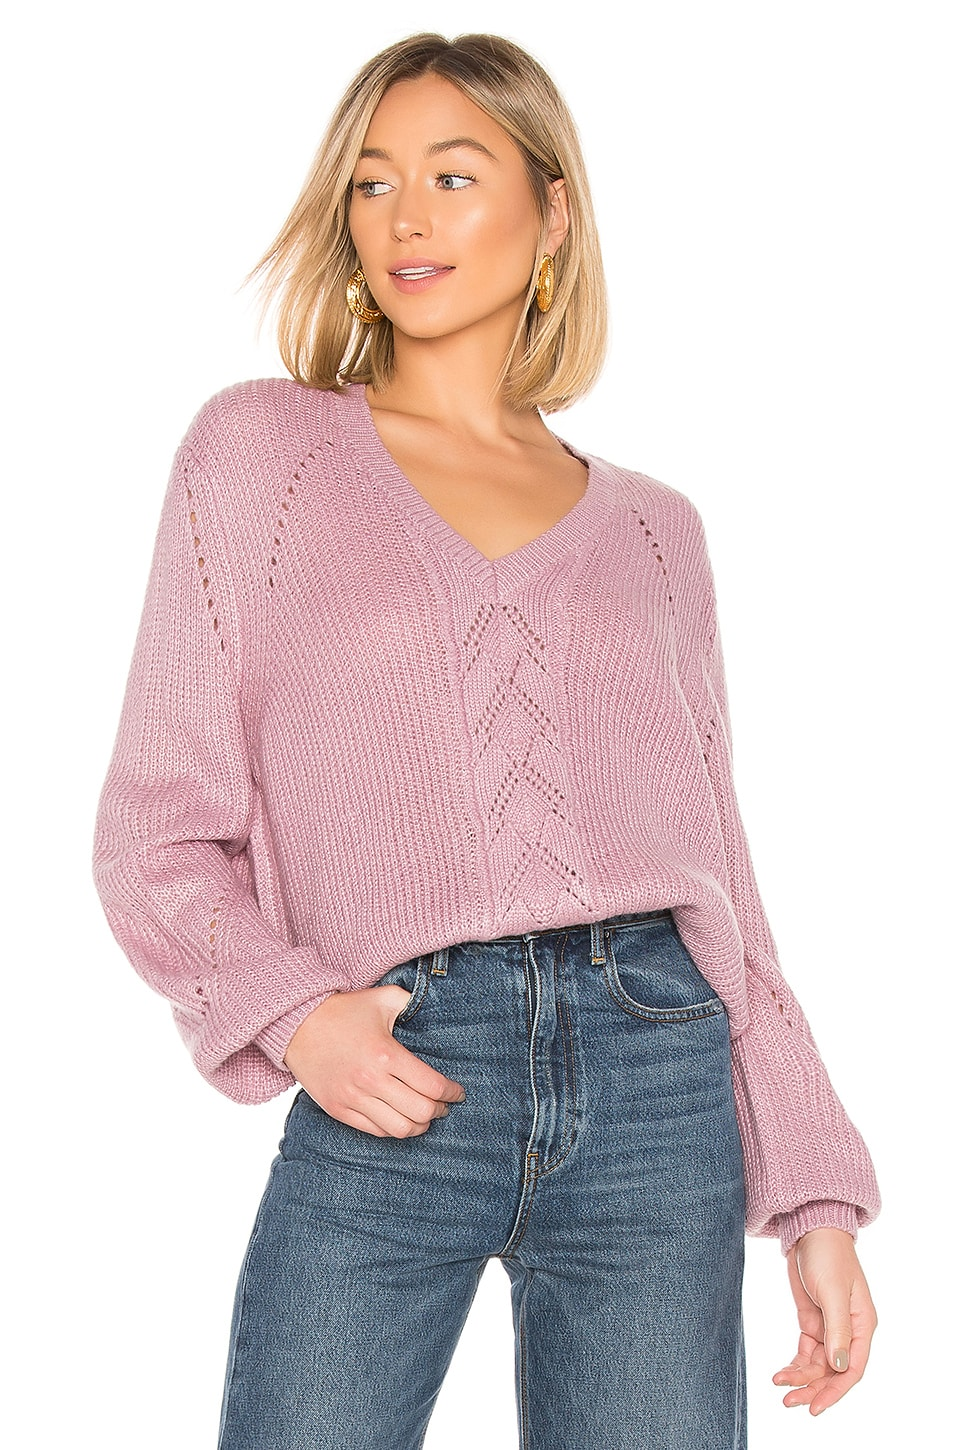 House of Harlow 1960 x REVOLVE Grayson Sweater in Lilac